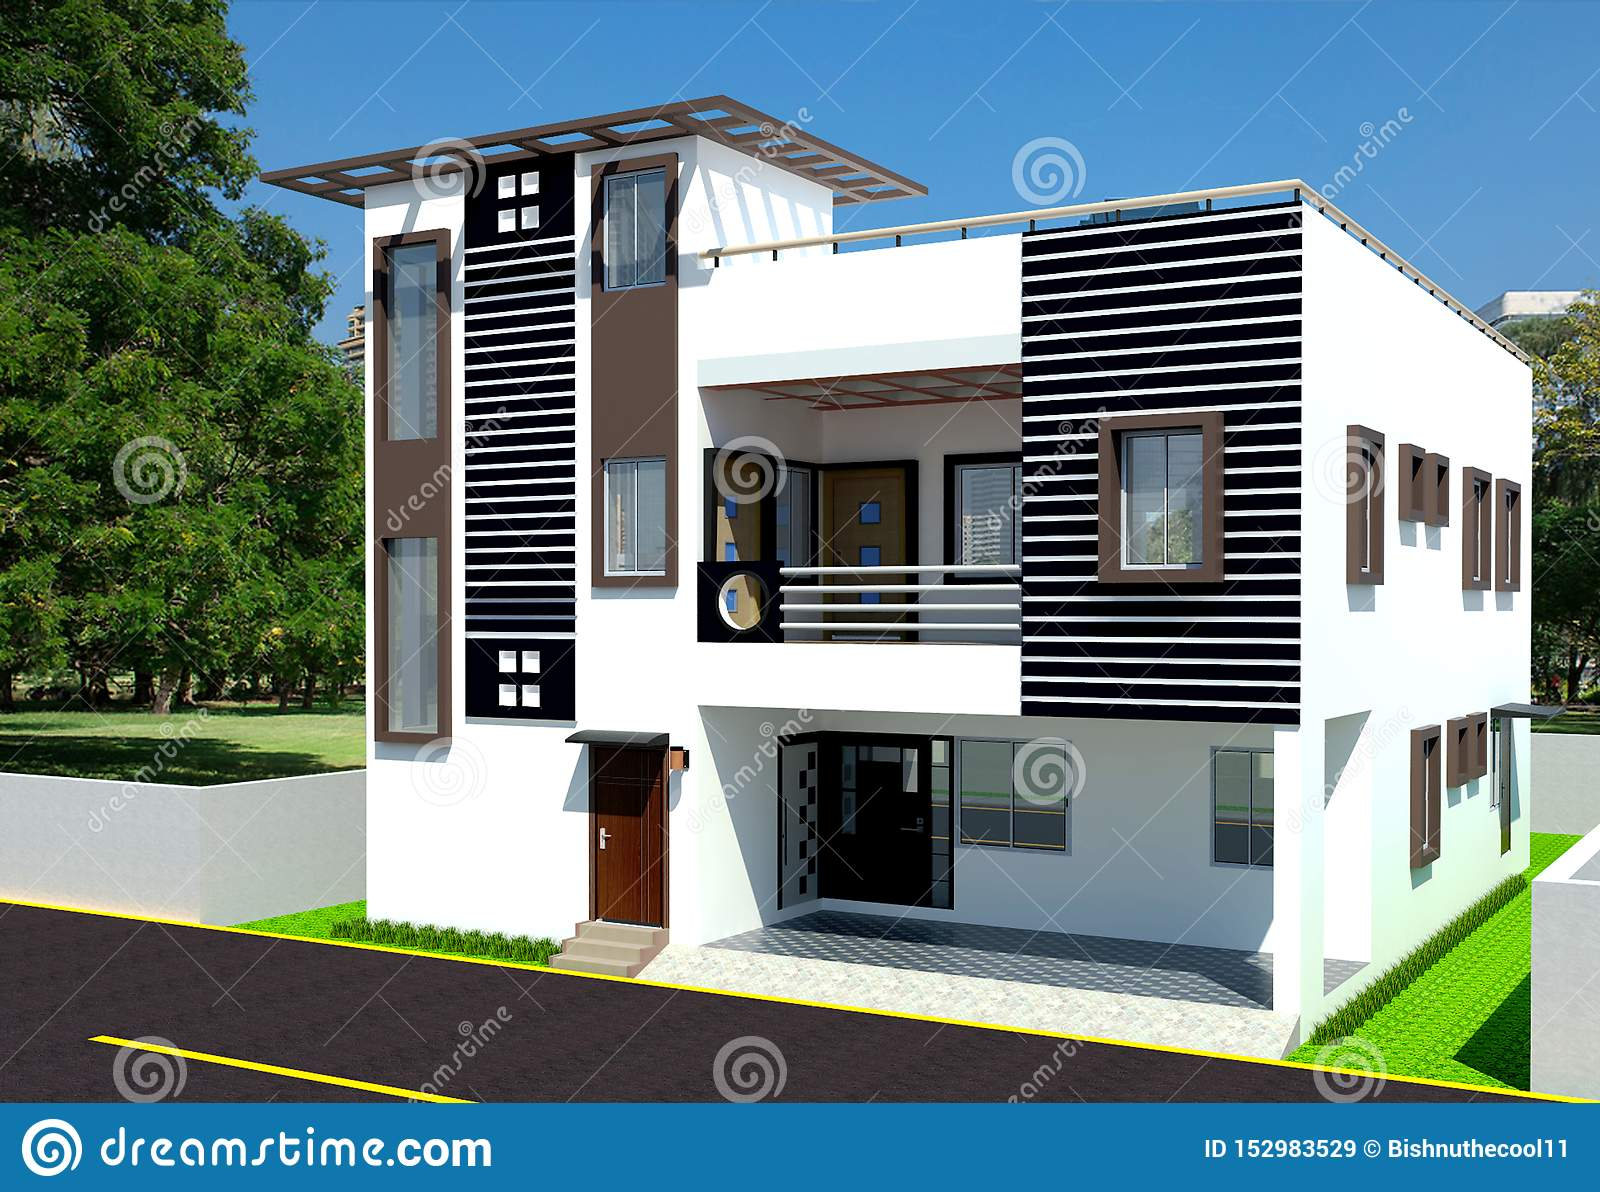 Front Elevation Residential Building Stock Image Image Of Residential Elevation 152983529